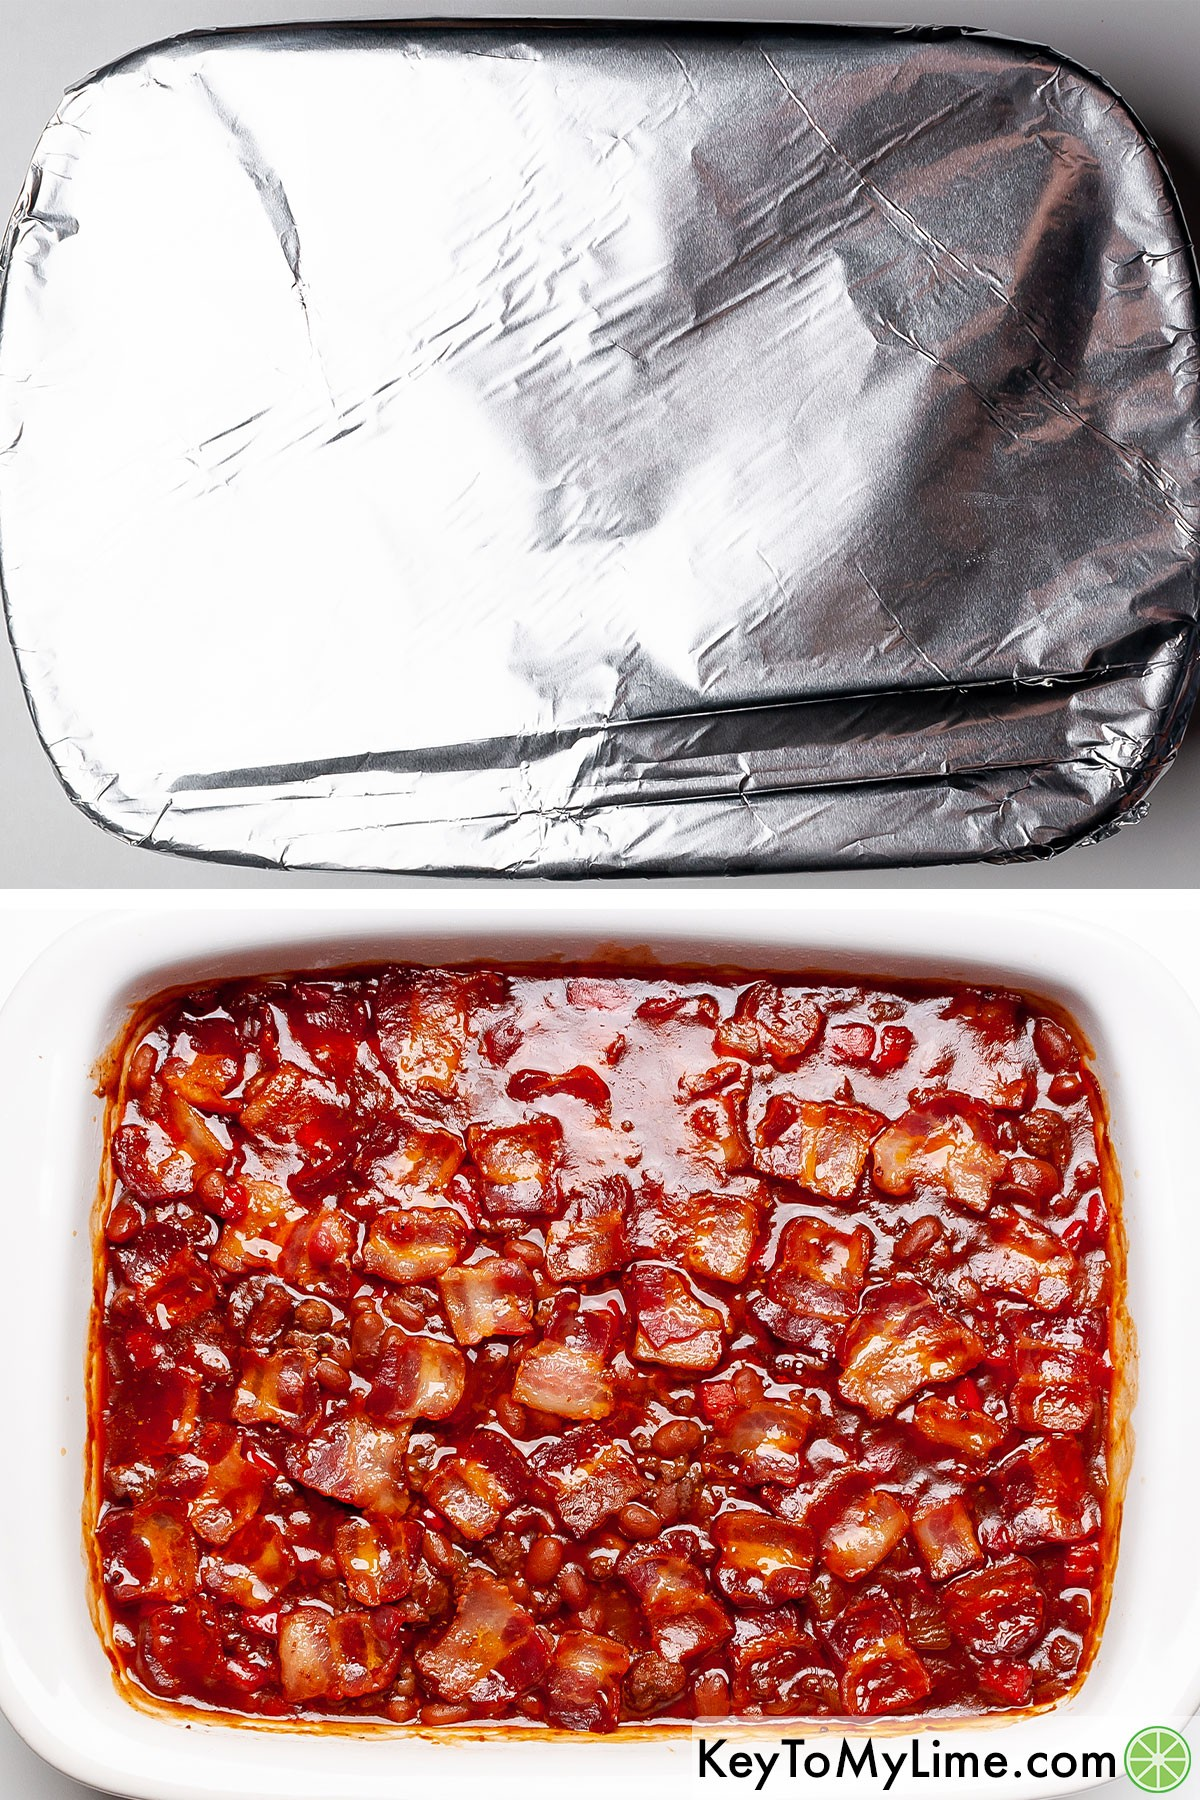 Covering baked beans with aluminum foil to bake, then what the bean casserole looks like after baking.